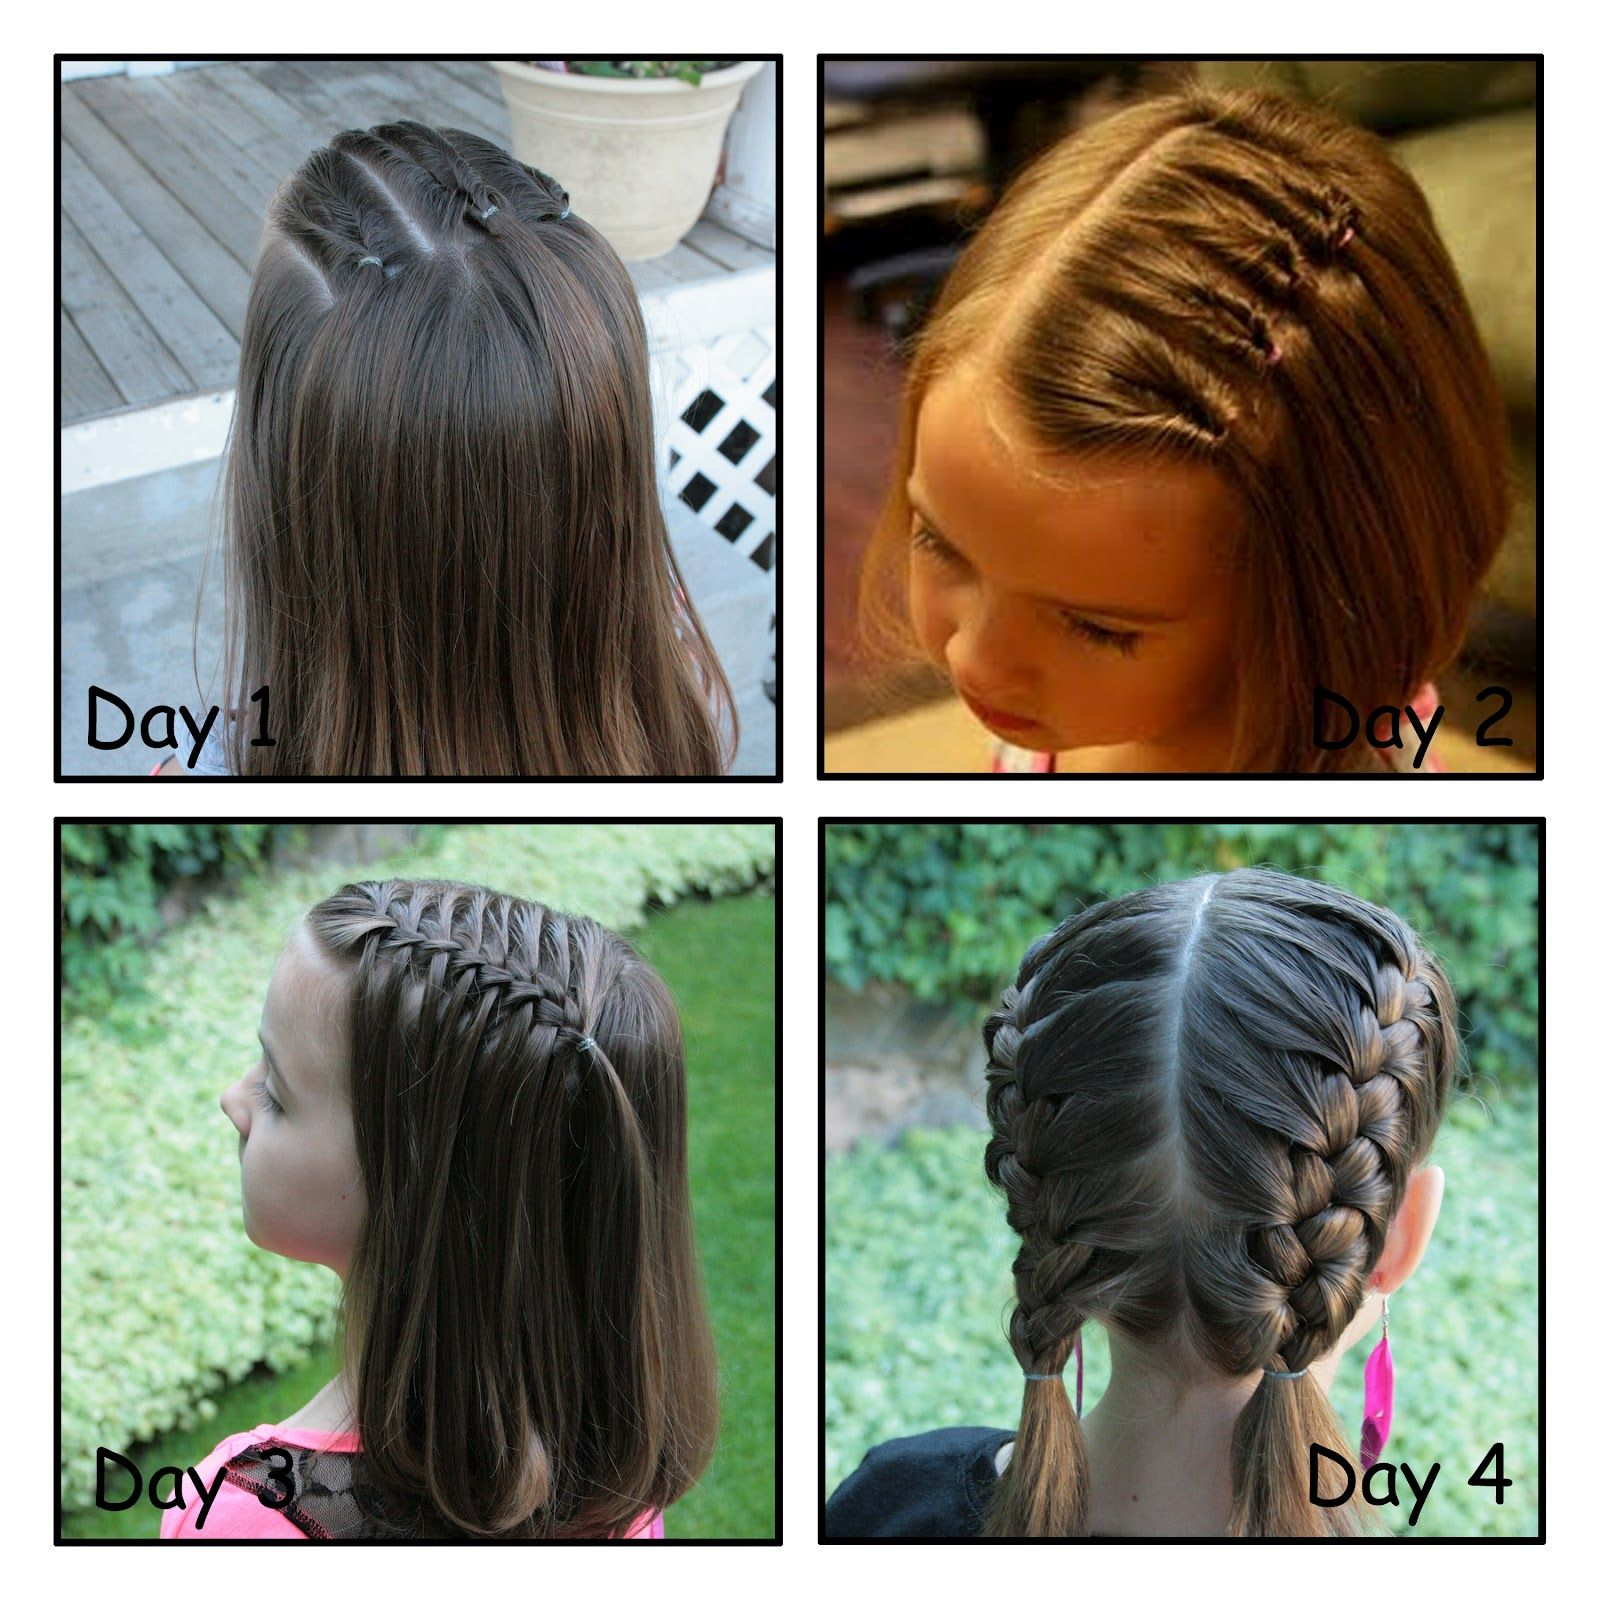 ladder braid diagram 2006 toyota corolla stereo wiring girly do hairstyles by jenn back to school so beautiful